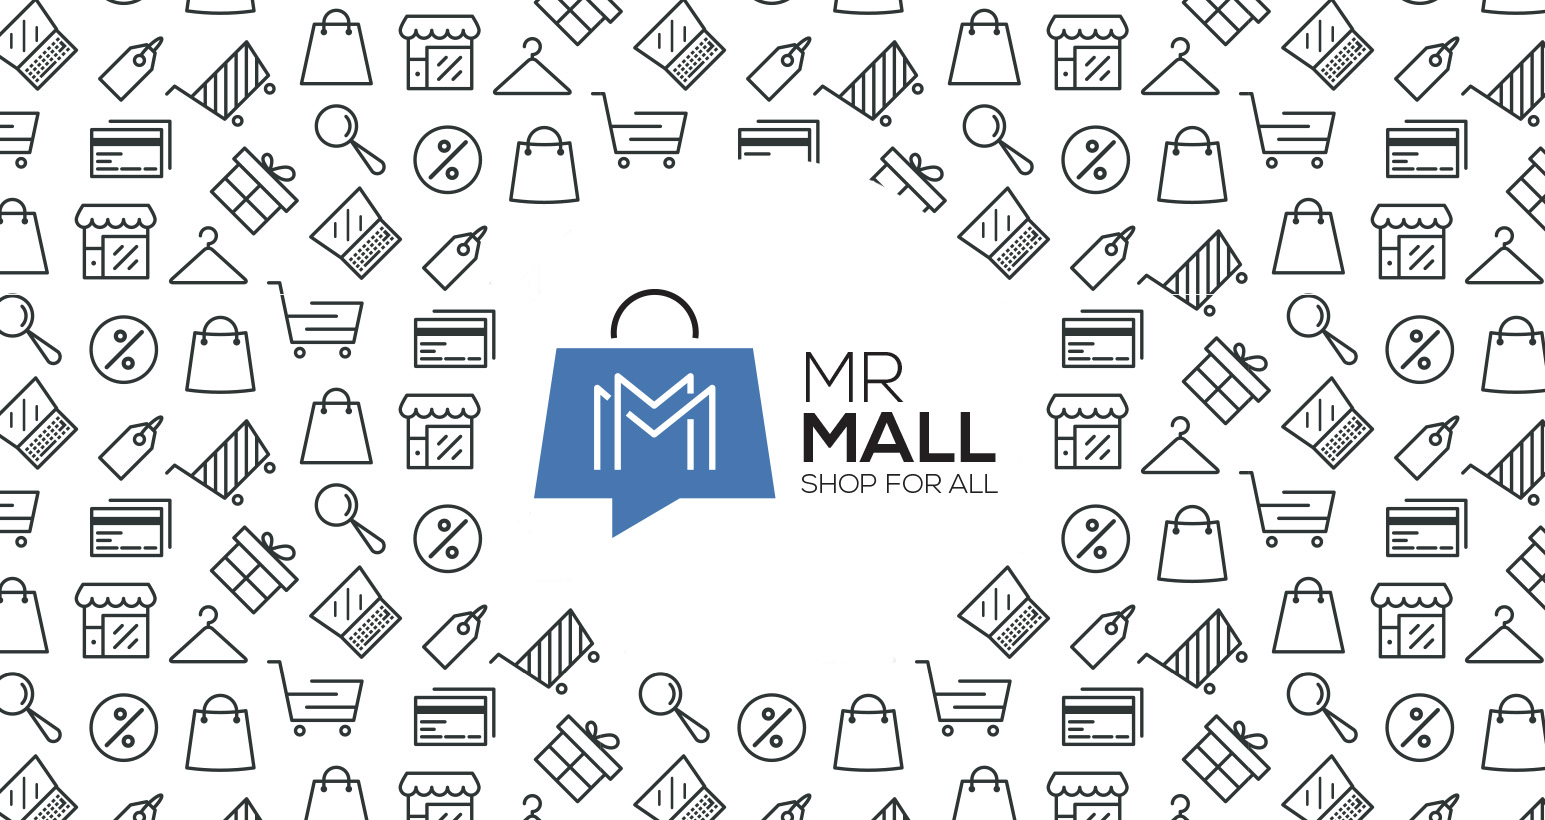 MrMall Shop For All